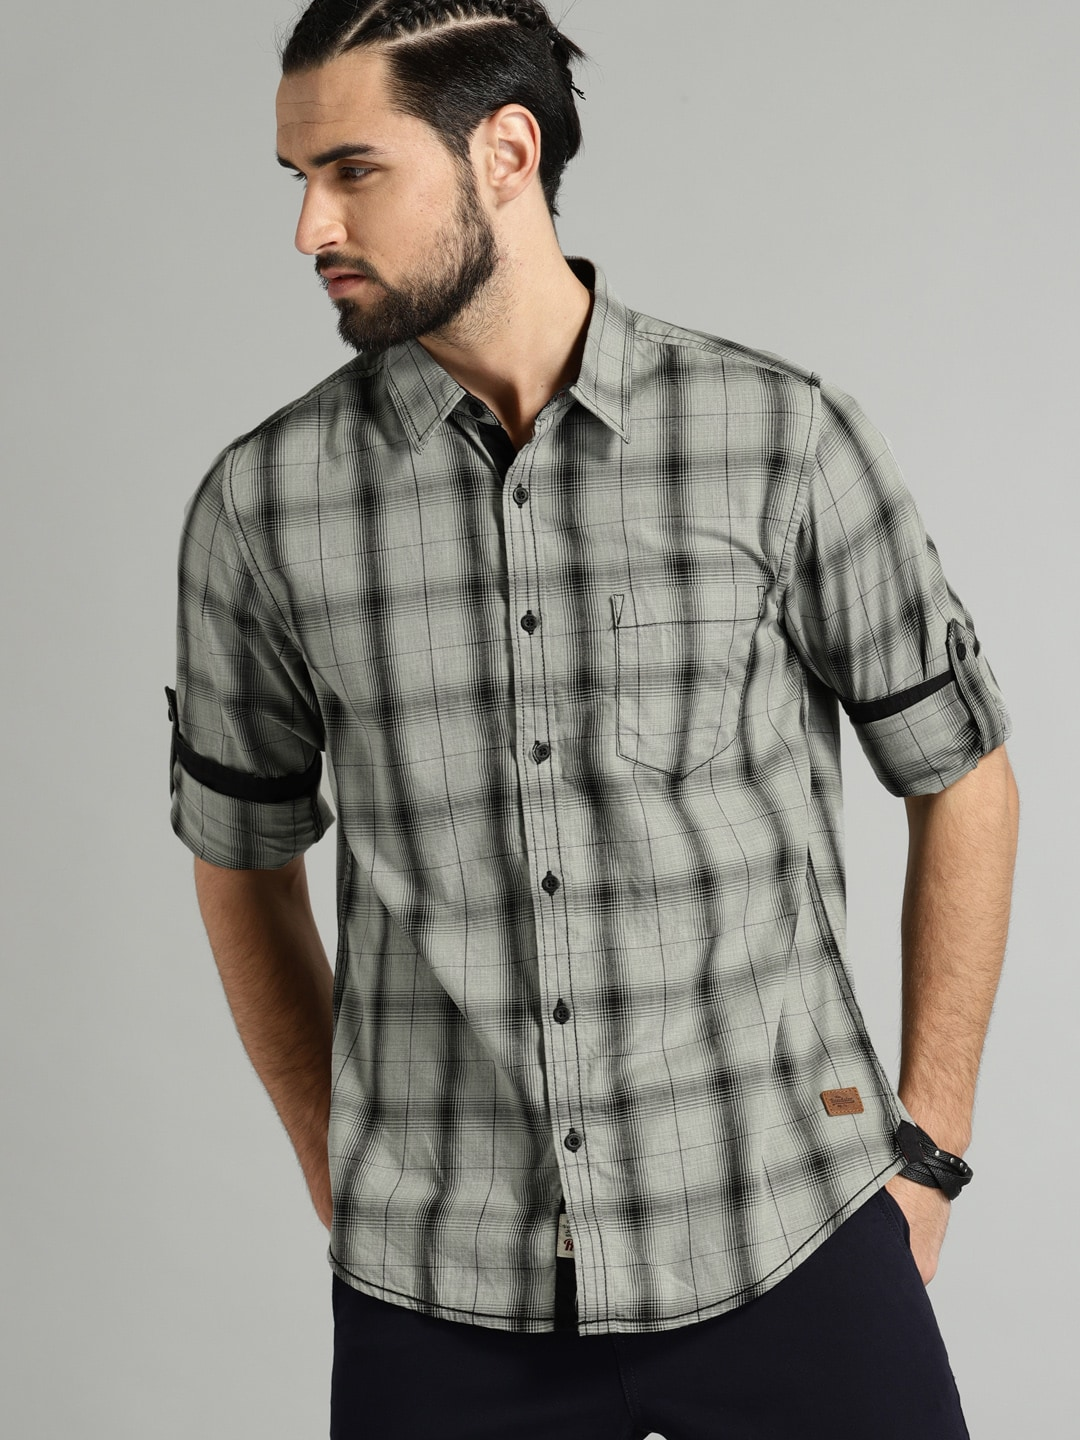 Buy Roadster Grey & Black Regular Fit Checked Men's Casual Shirt At Best Price